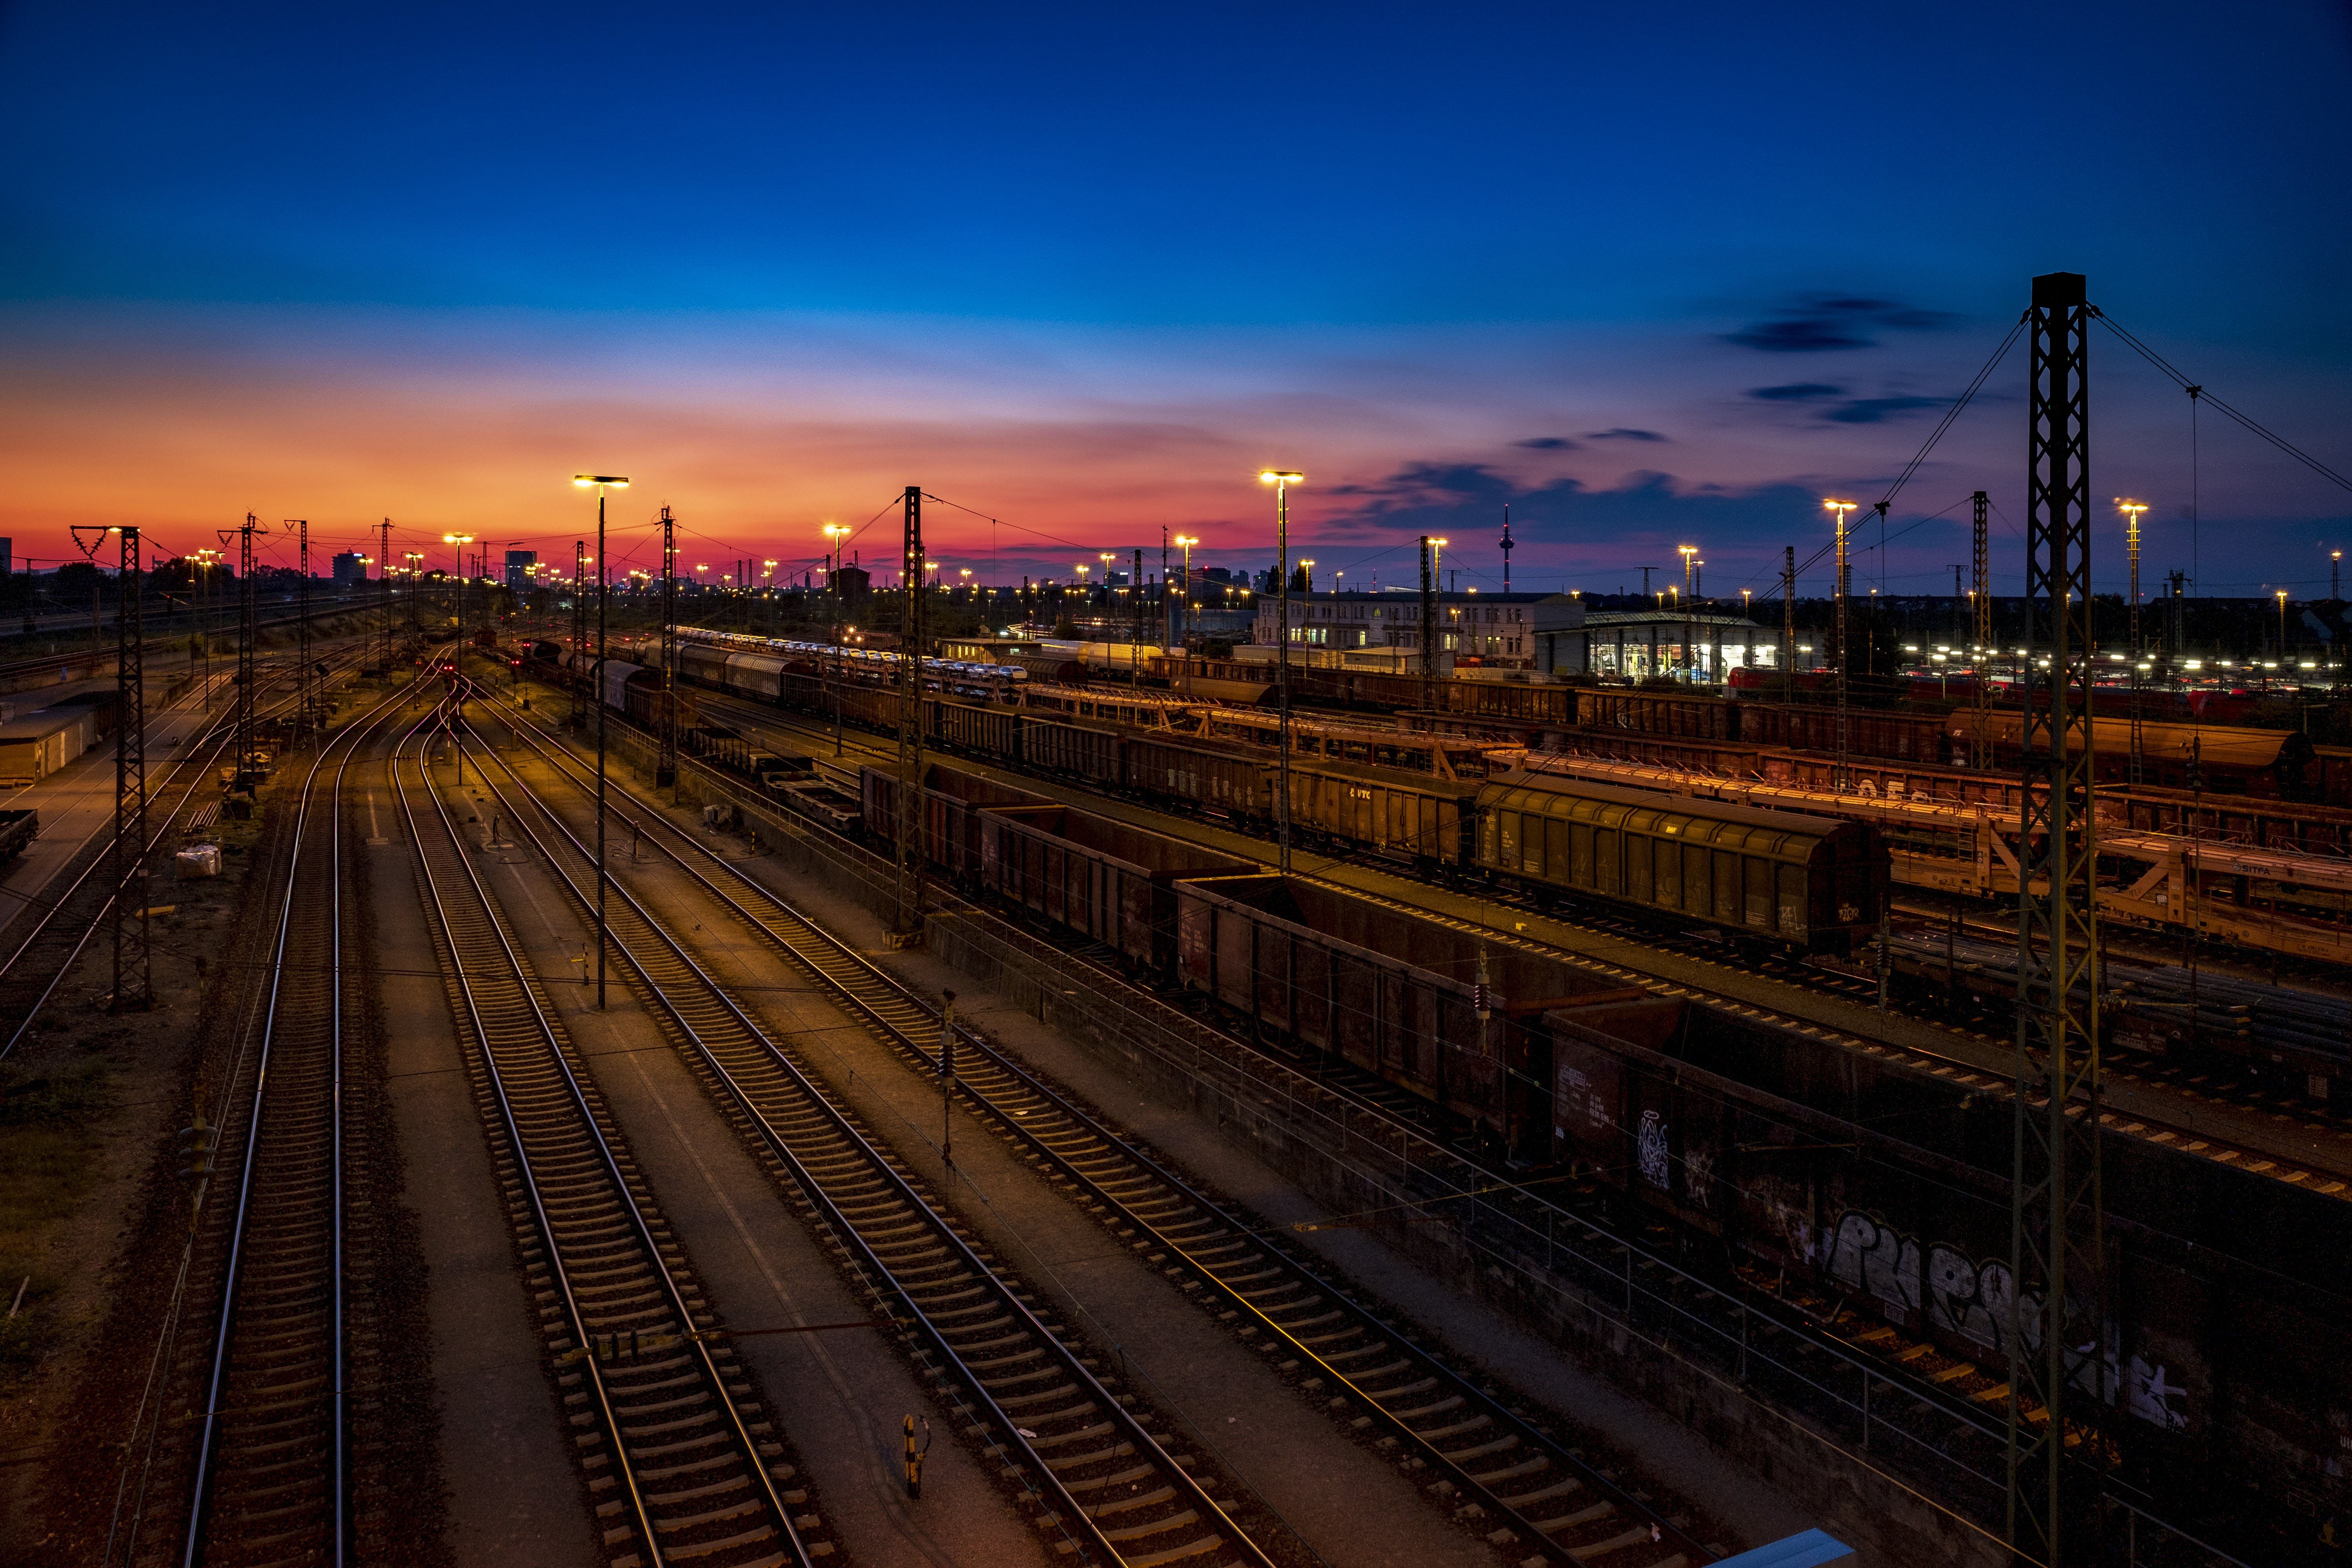 Aerial Photo of Train Rails Under Golden Sky